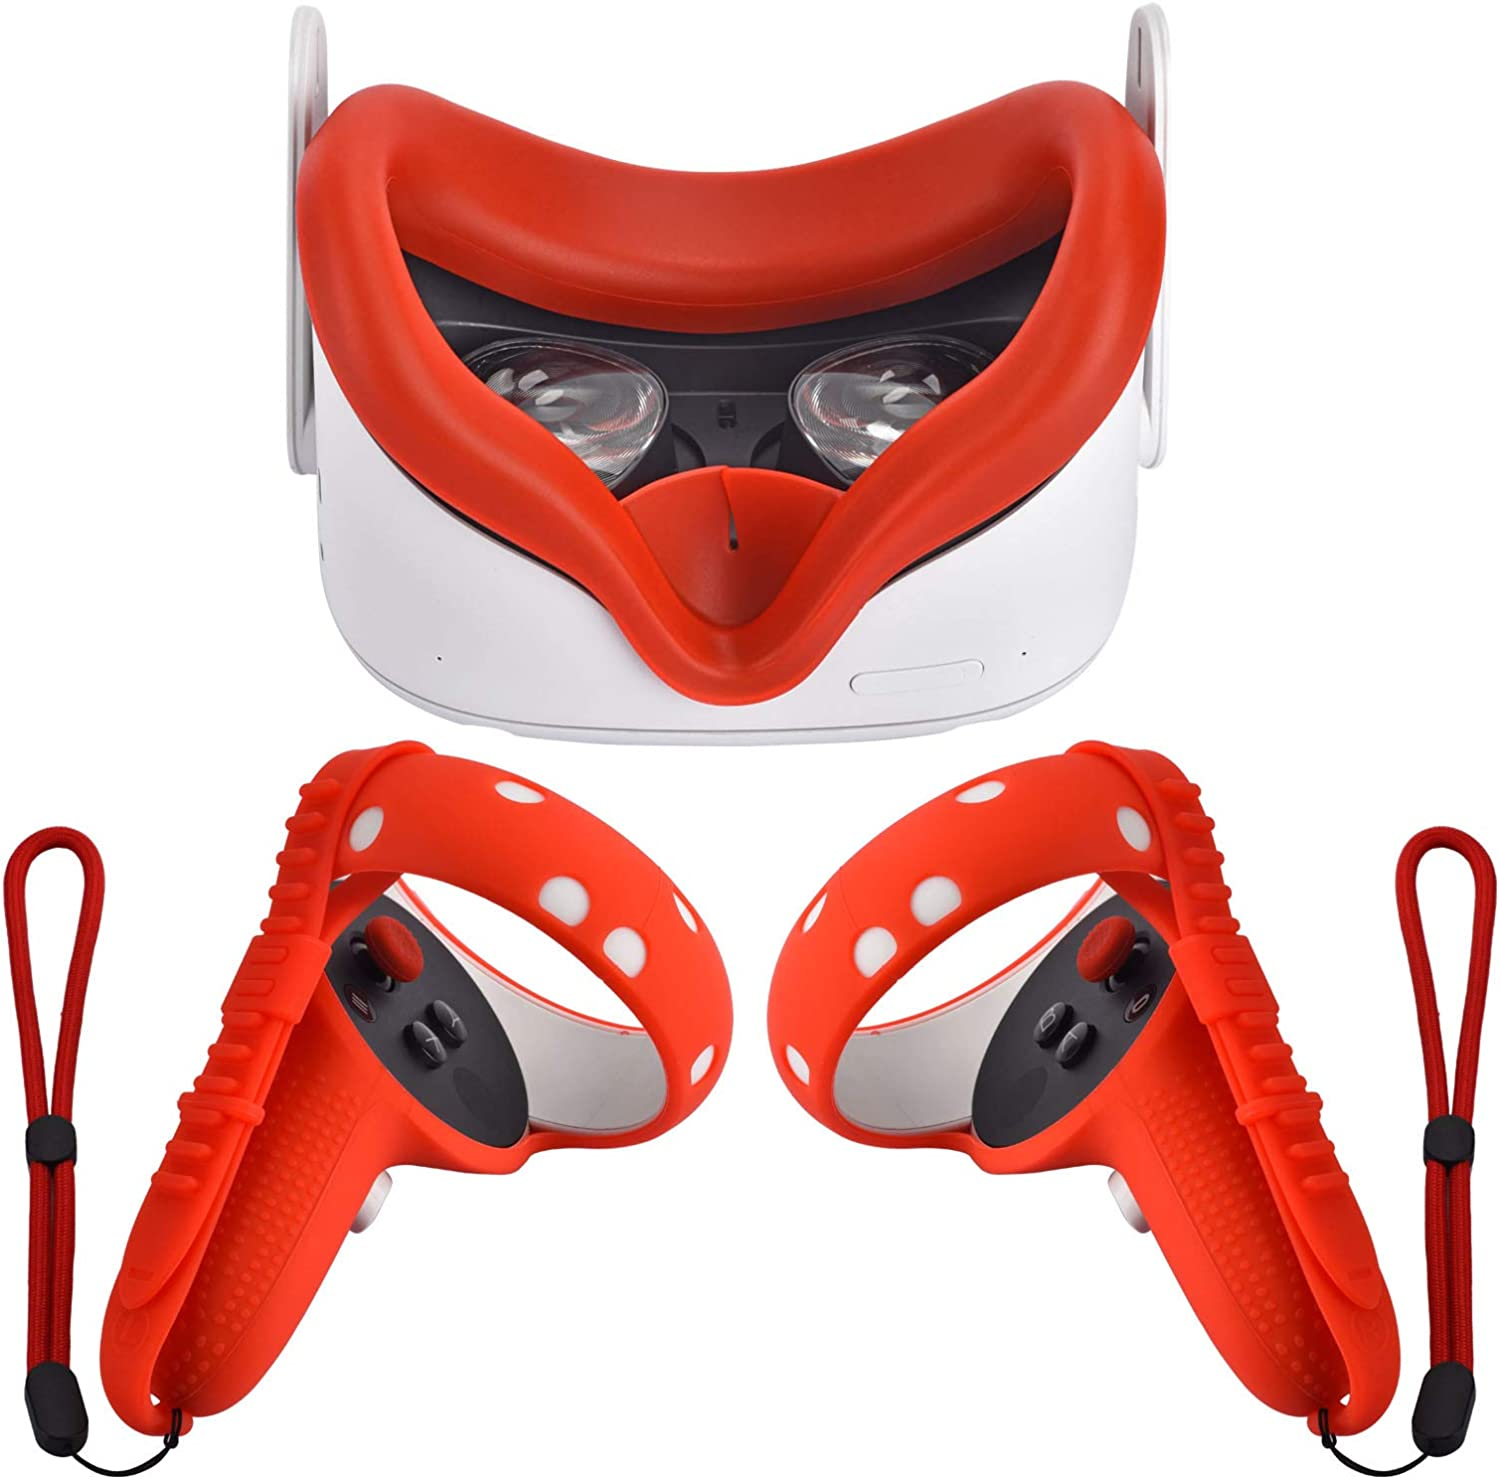 XIAOGE Silicone Controller Grip Cover for Oculus Quest 2 with Face Cover Combo, VR Headset Accessories Sweatproof Anti Collision (Red)